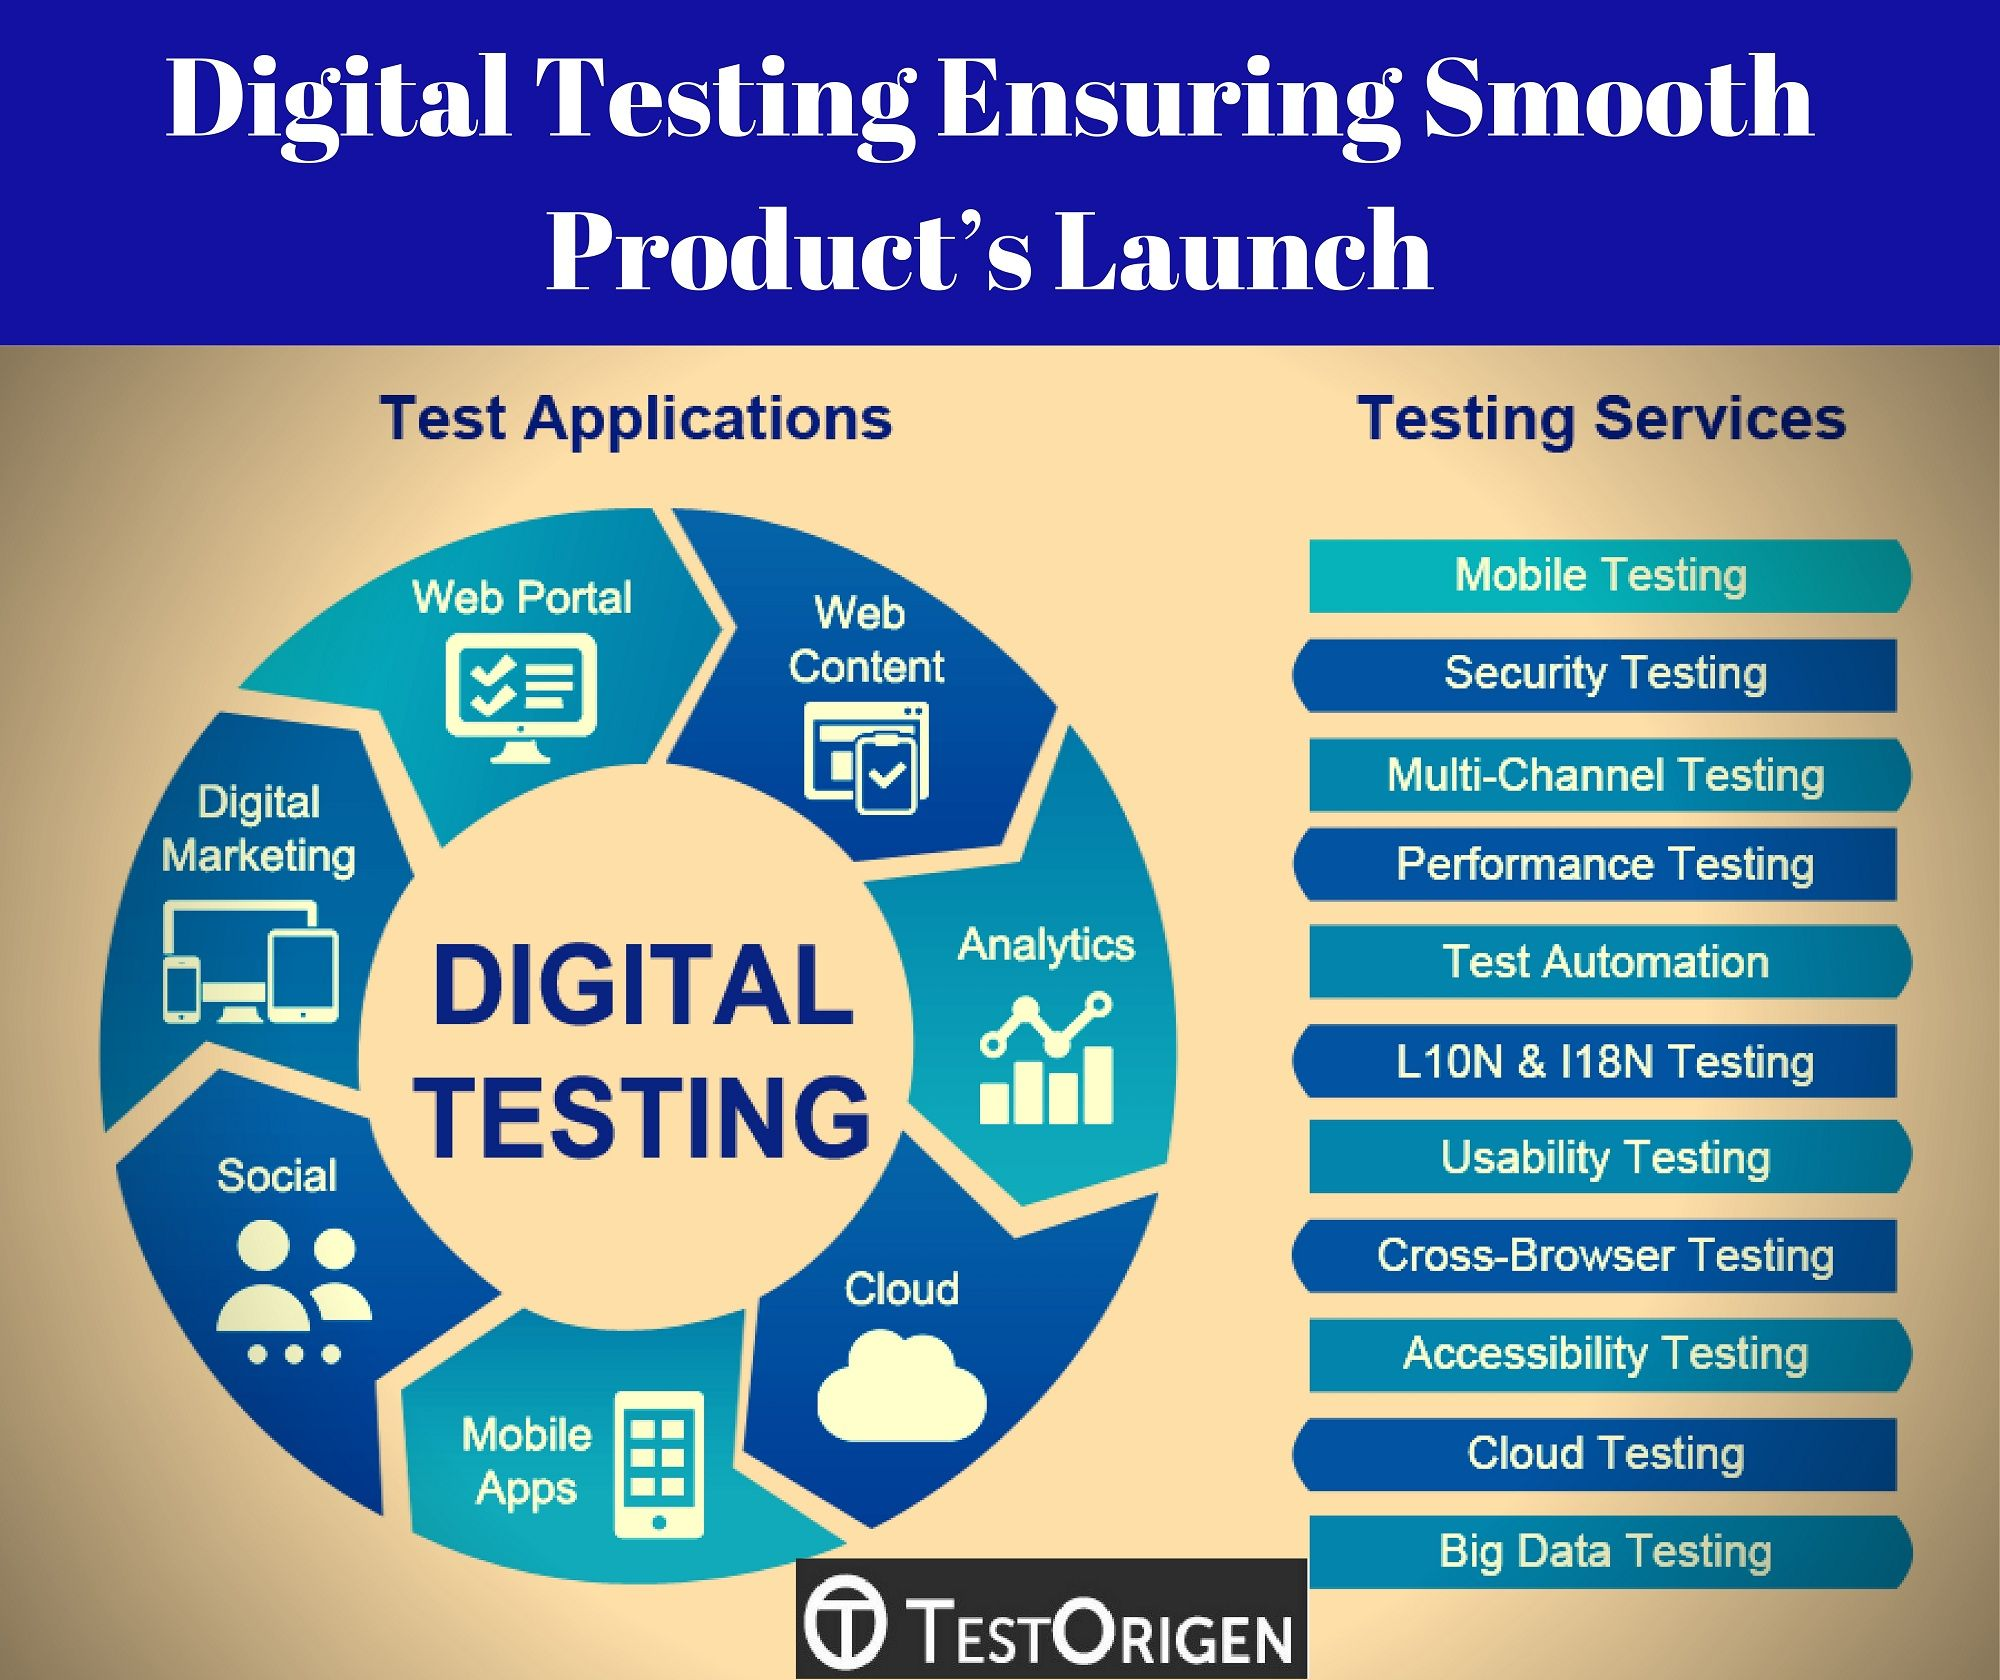 Digital Testing Digital Systems Testing And Testable Design Digital Troubleshooting And Testing Digital T Testing Techniques System Testing Software Testing